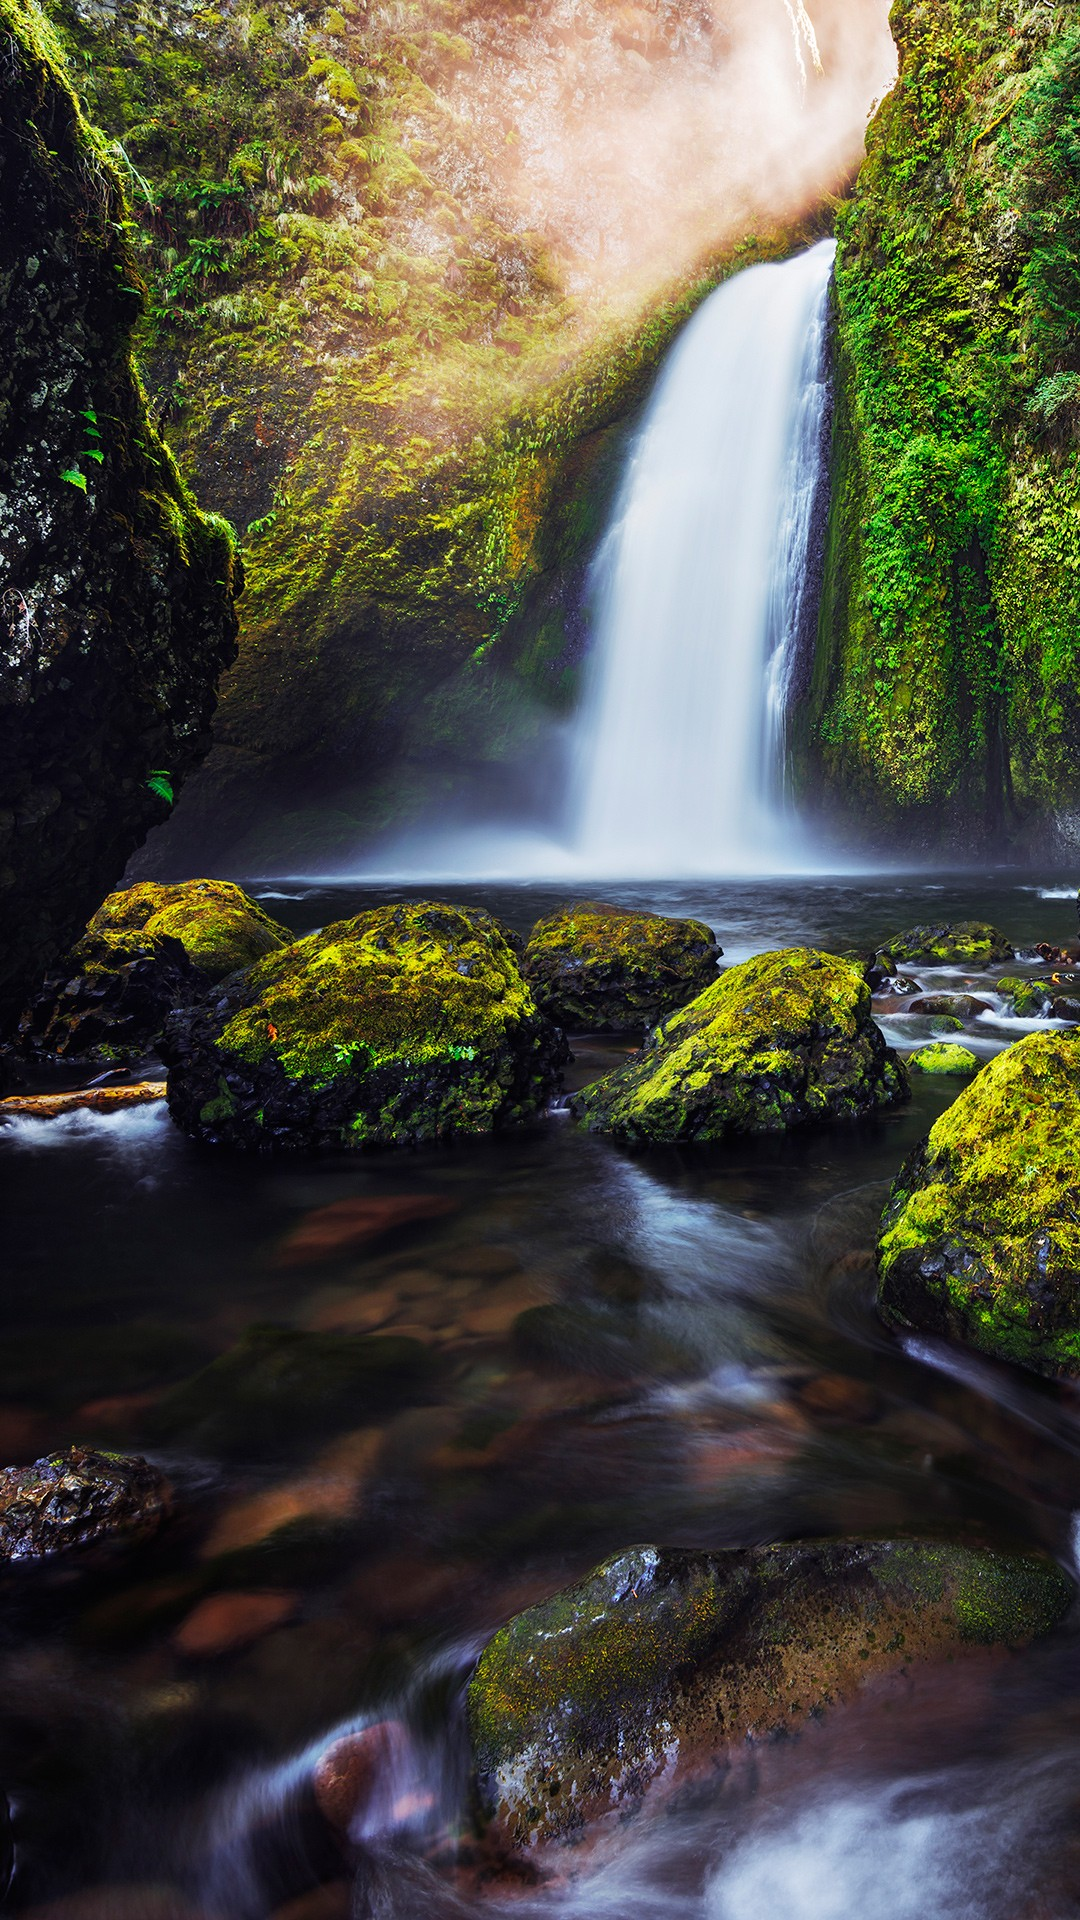 Wallpaper Of Water Fall Green Moss Waterfall 4k Wallpapers Hd Wallpapers Id 18535